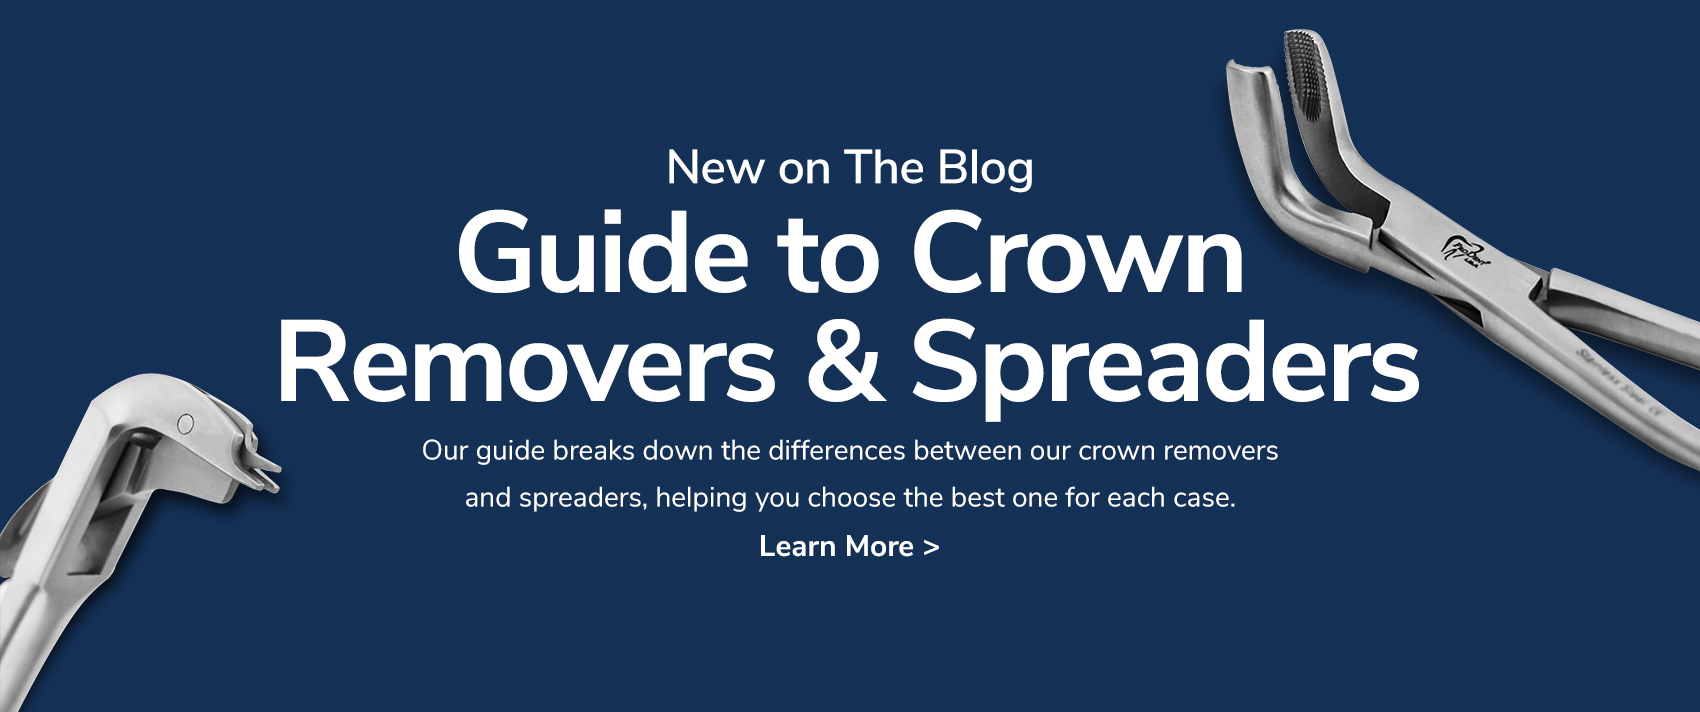 Guide to Crown Removers & Spreaders - Learn More